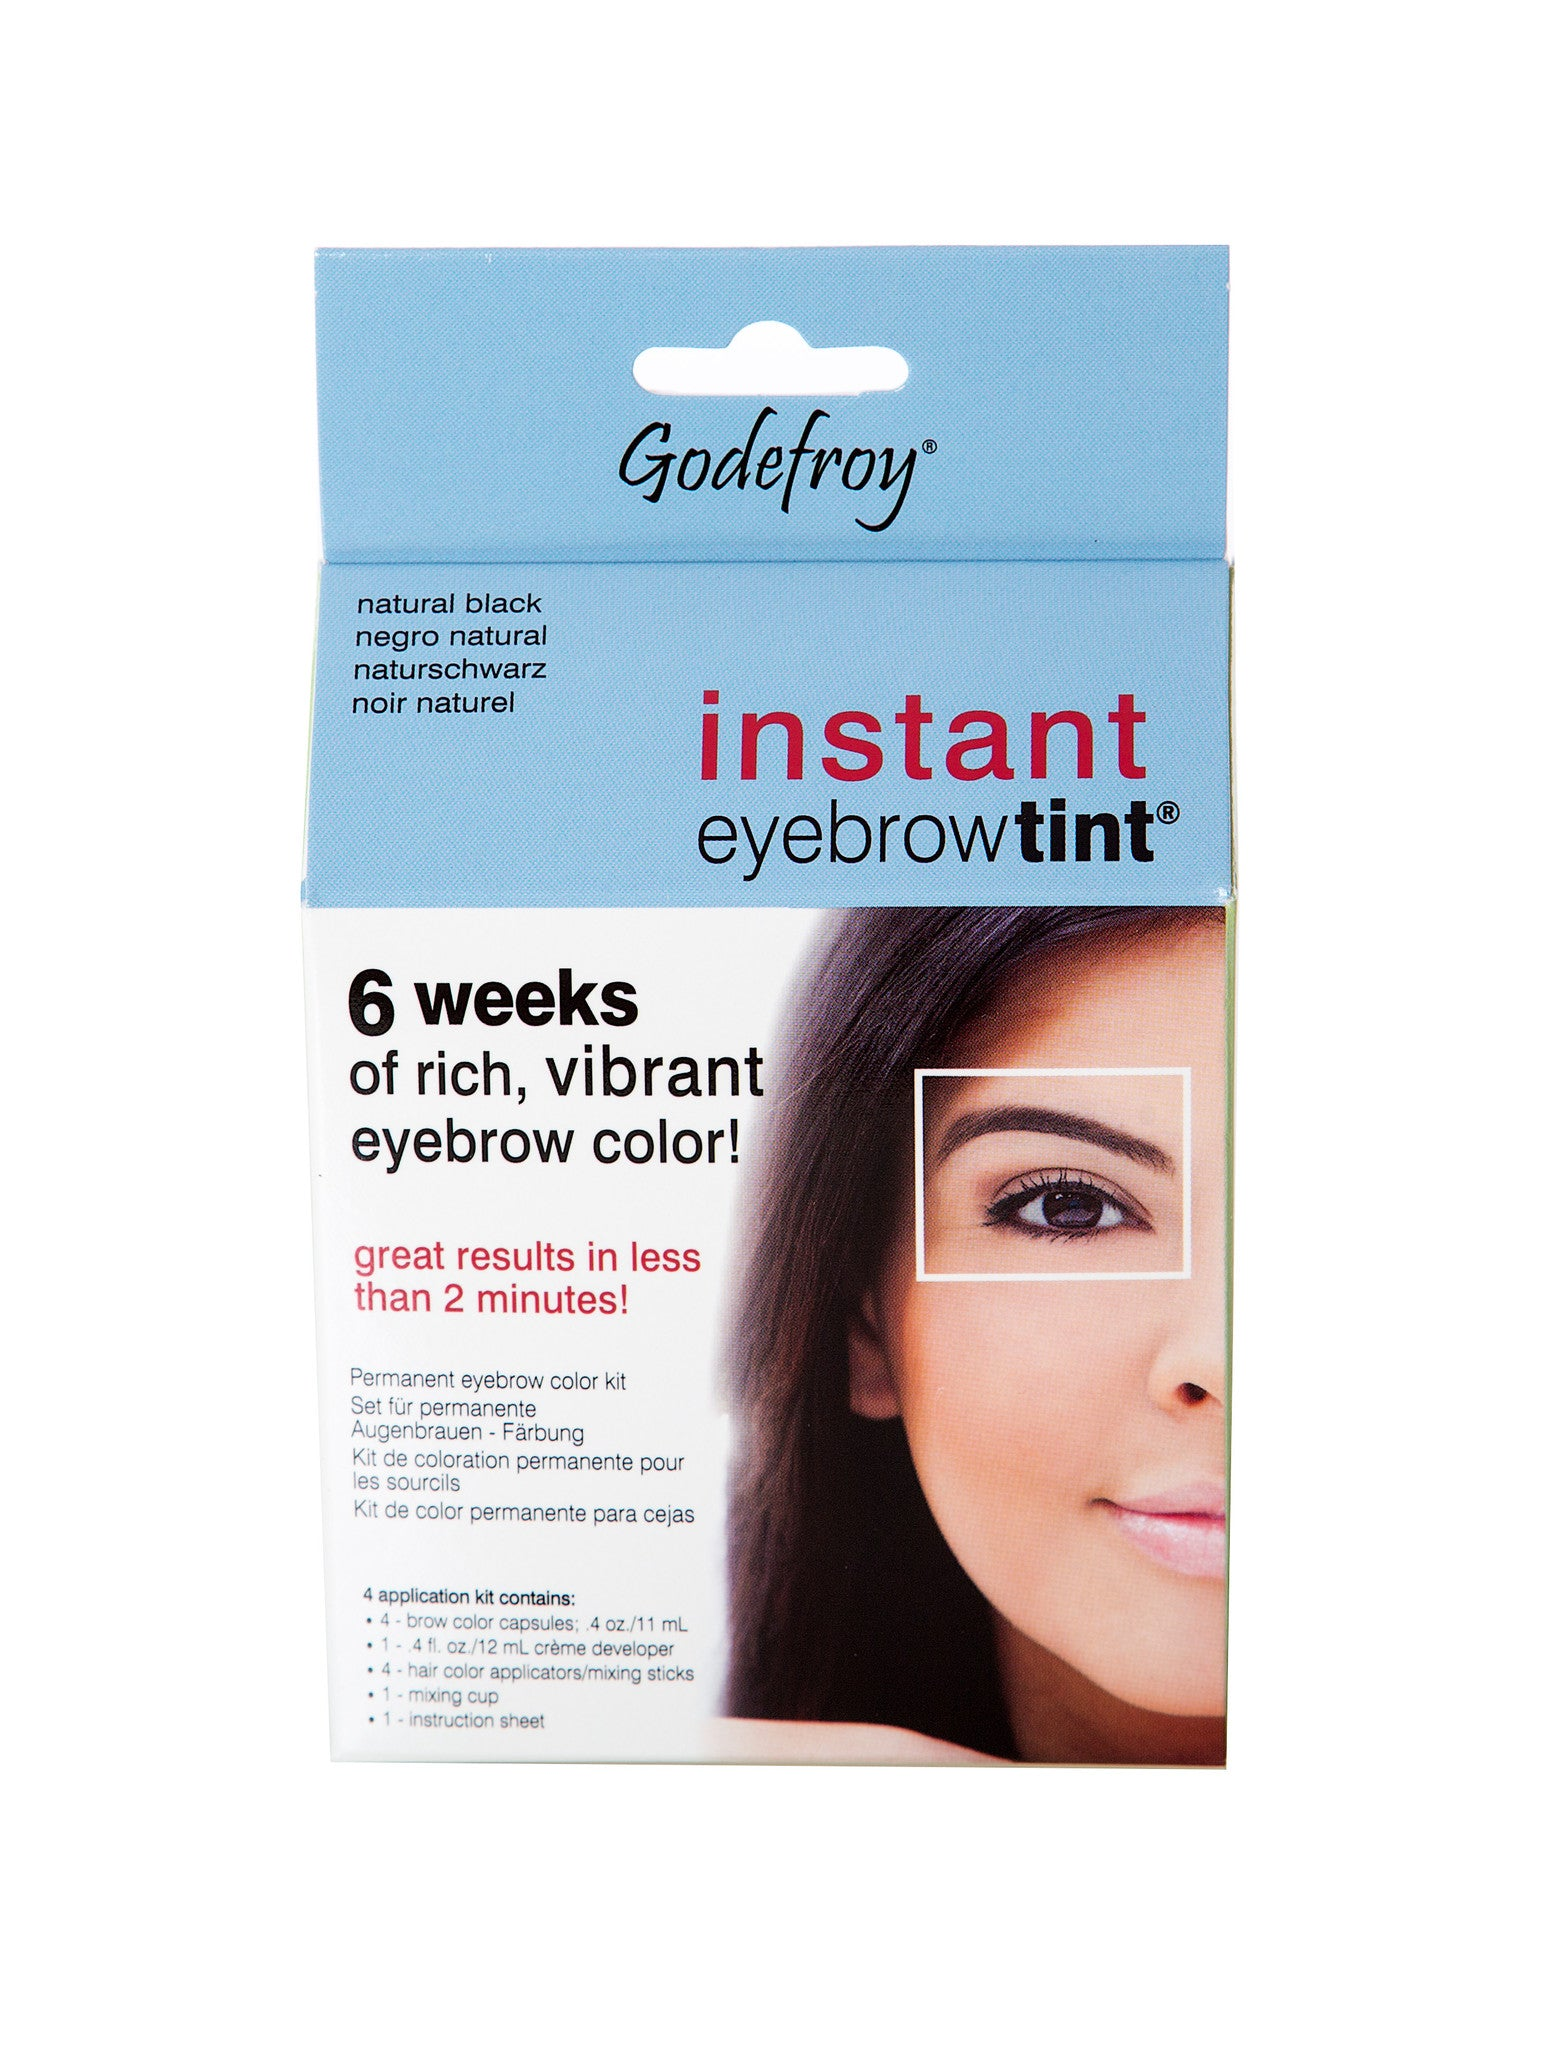 Godefroy Instant Eyebrow Tint NW Beauty Supply & Salon